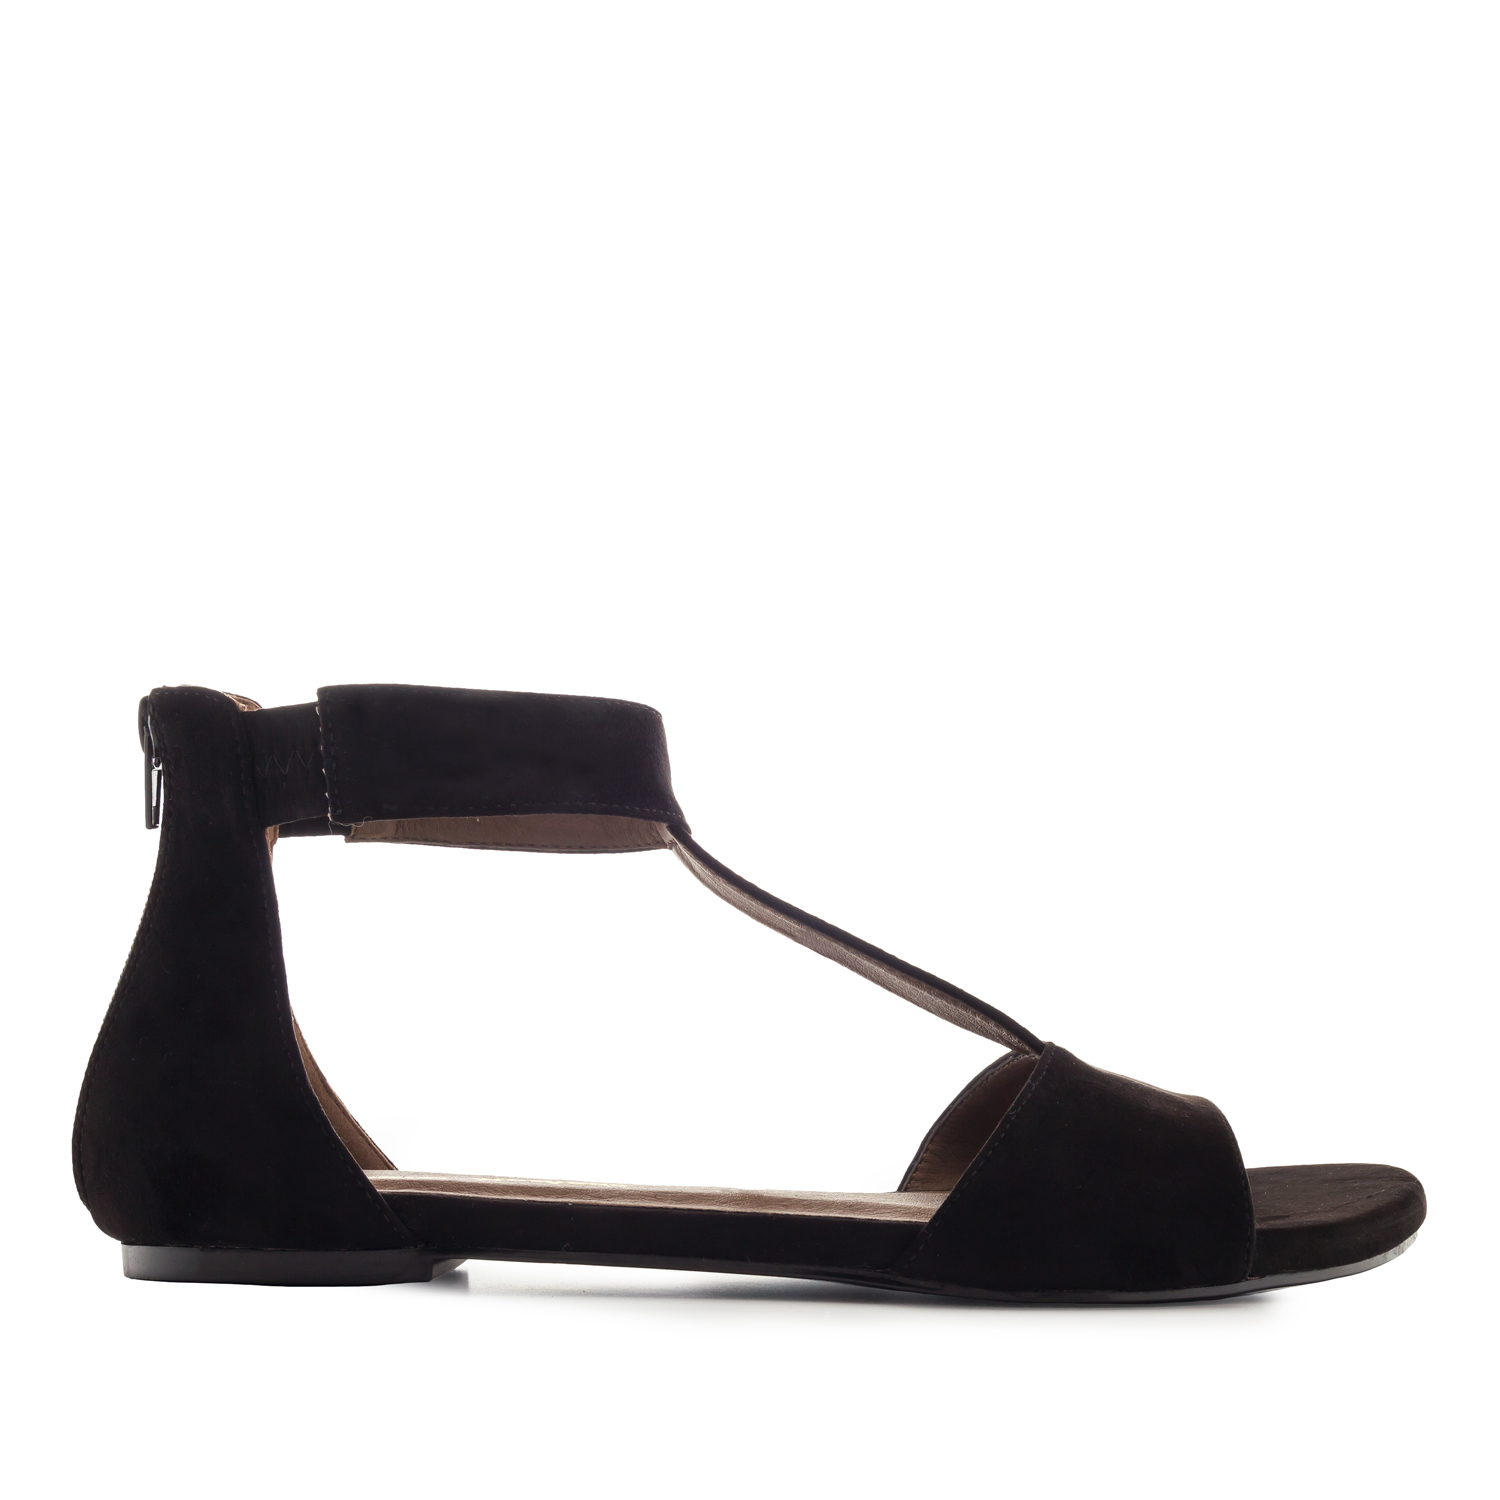 T-Bar Flat Sandals in Black Suede